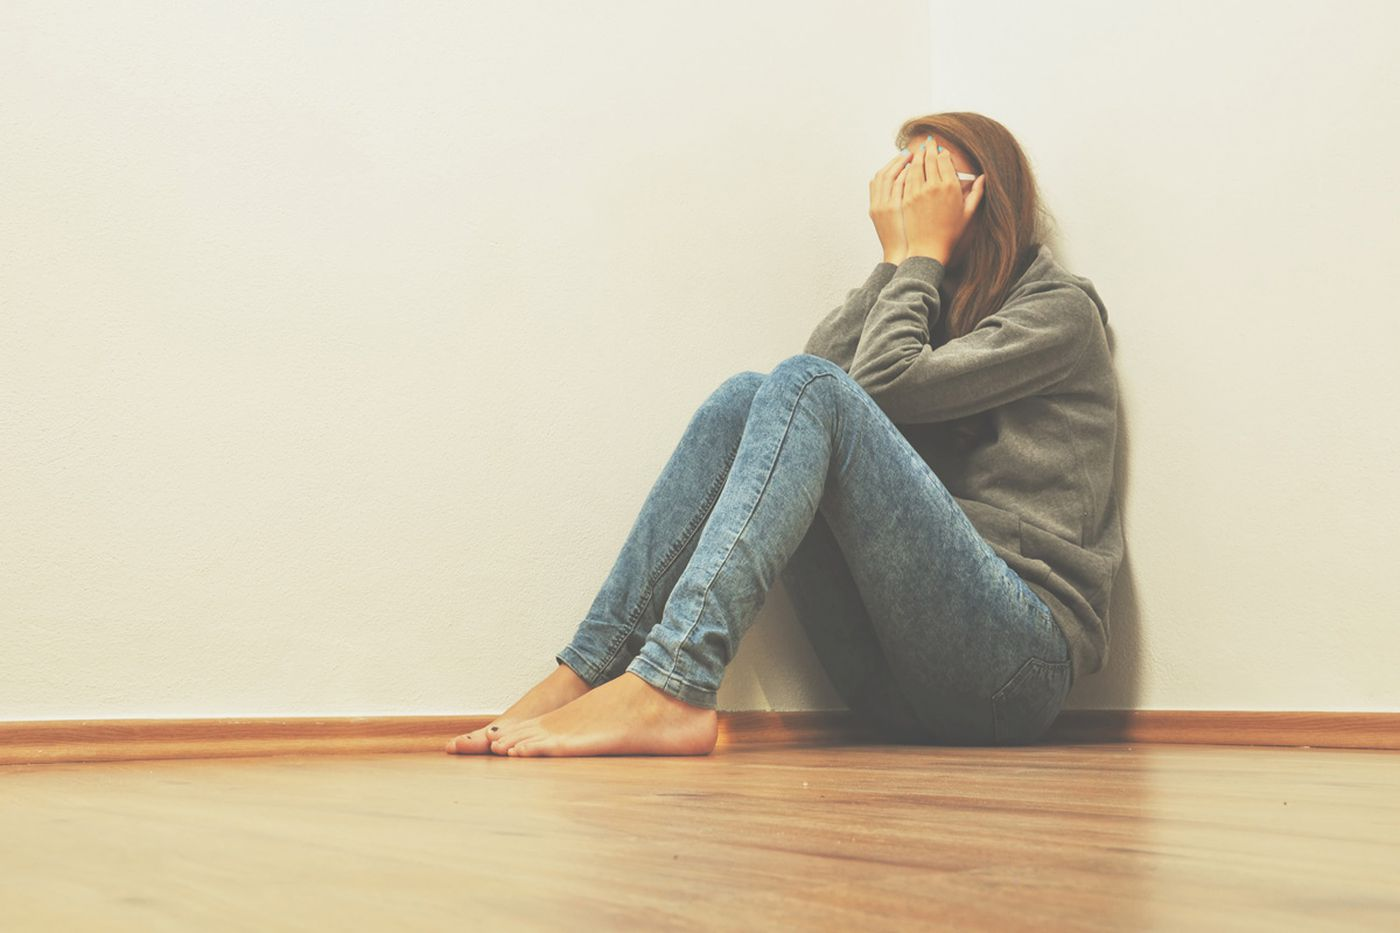 Sexual violence and teens: breaking the silence